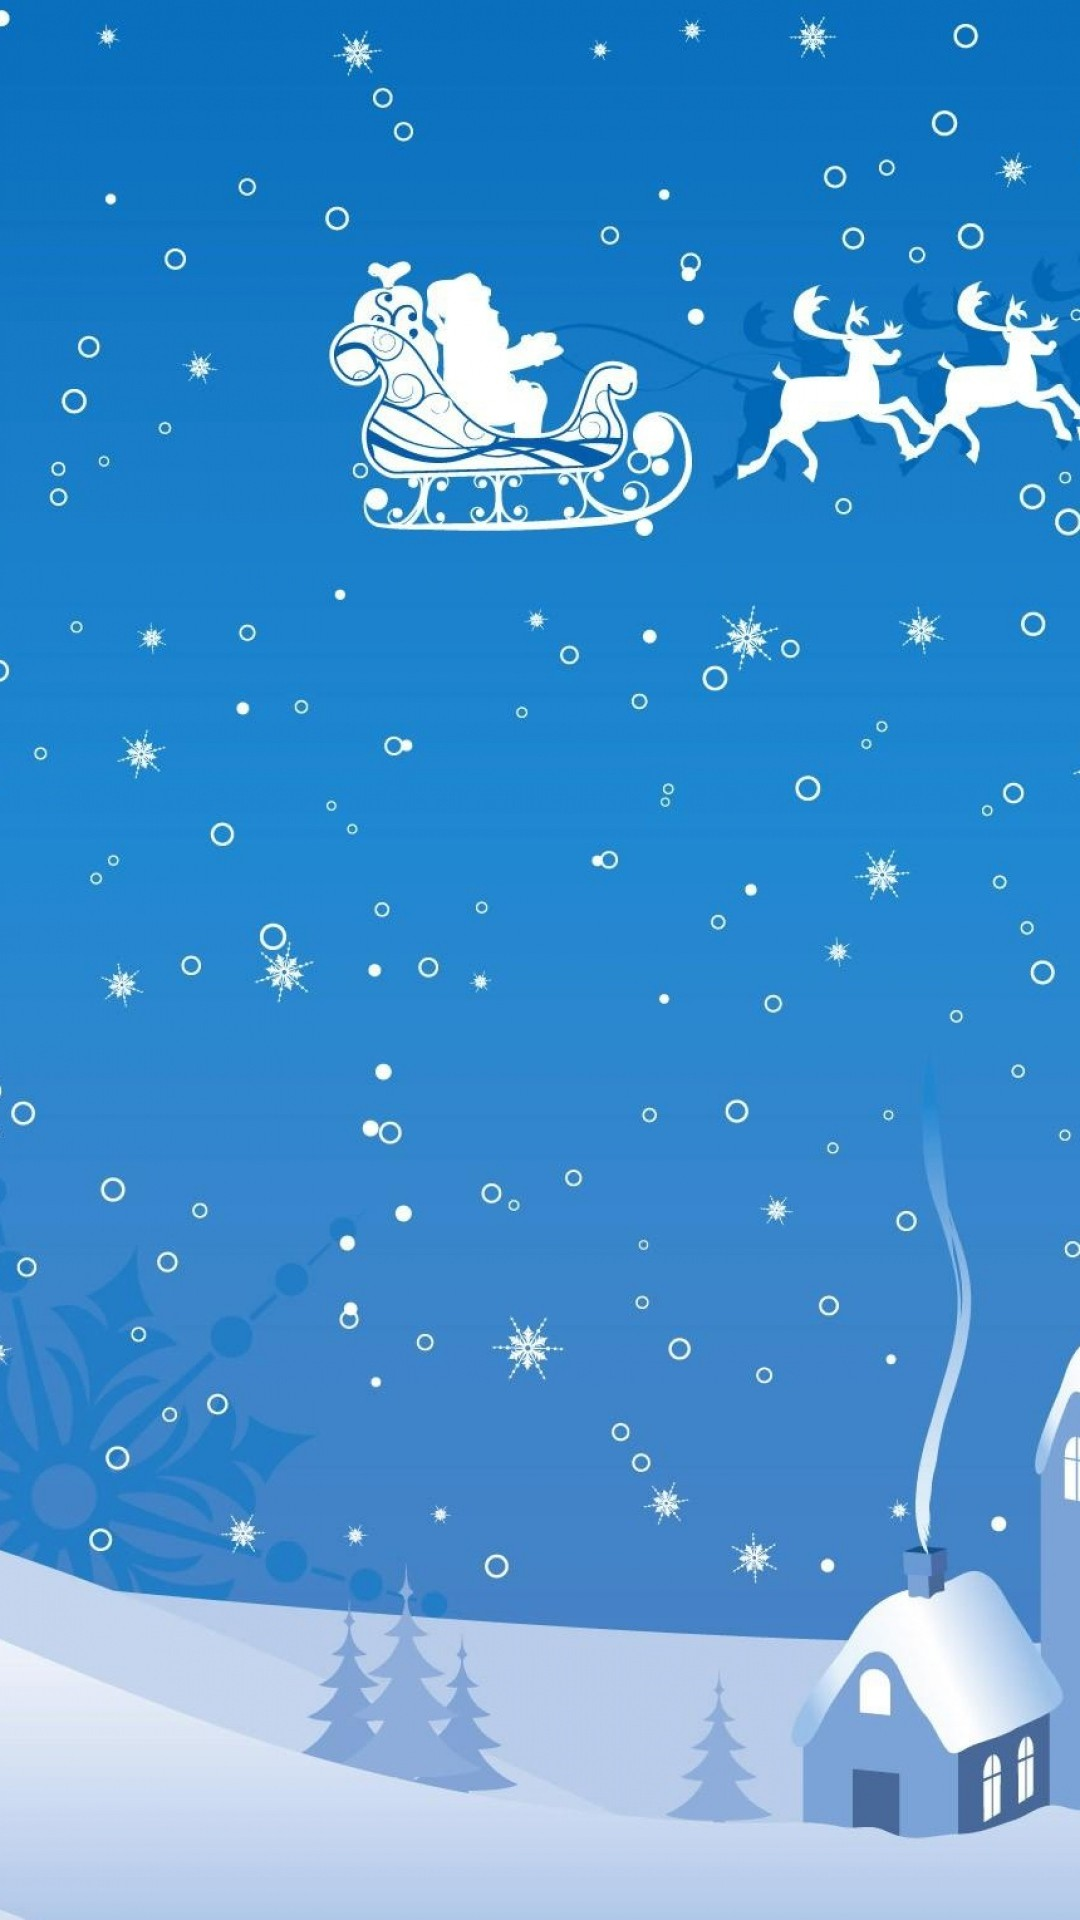 blue-and-white-Christmas-santa-iPhone-plus-reindeer-wallpaper-wpc9003018